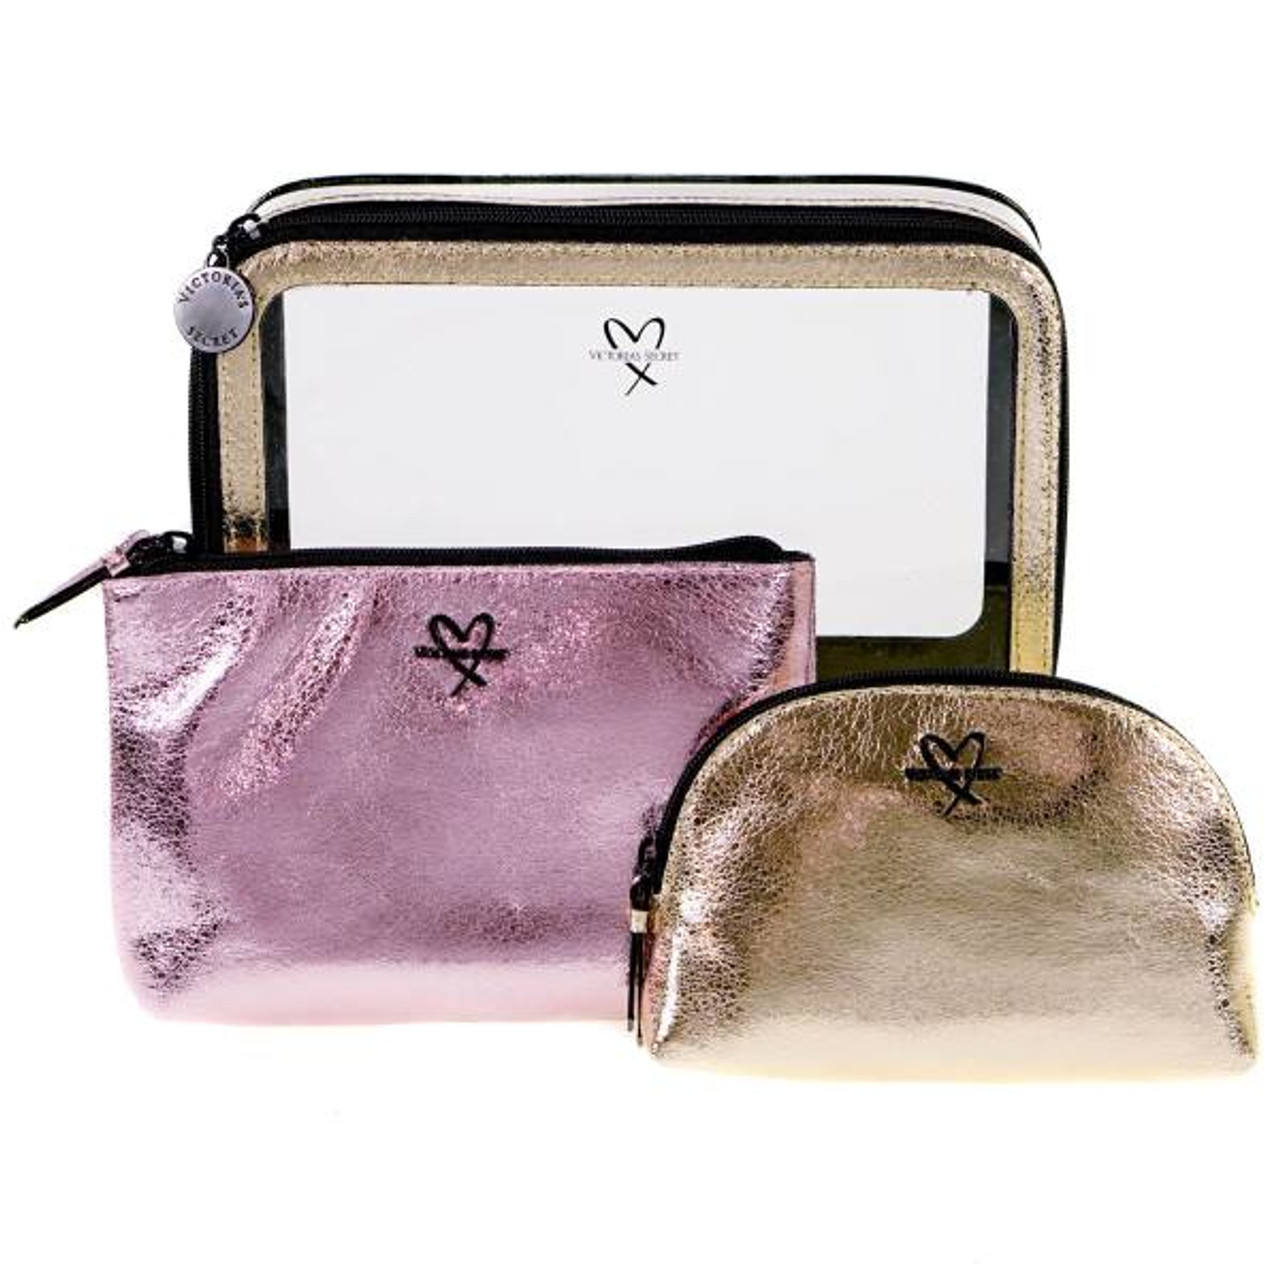 be8137d8125e Victoria s Secret Gold And Pink Cosmetic Bag 3 Piece Set